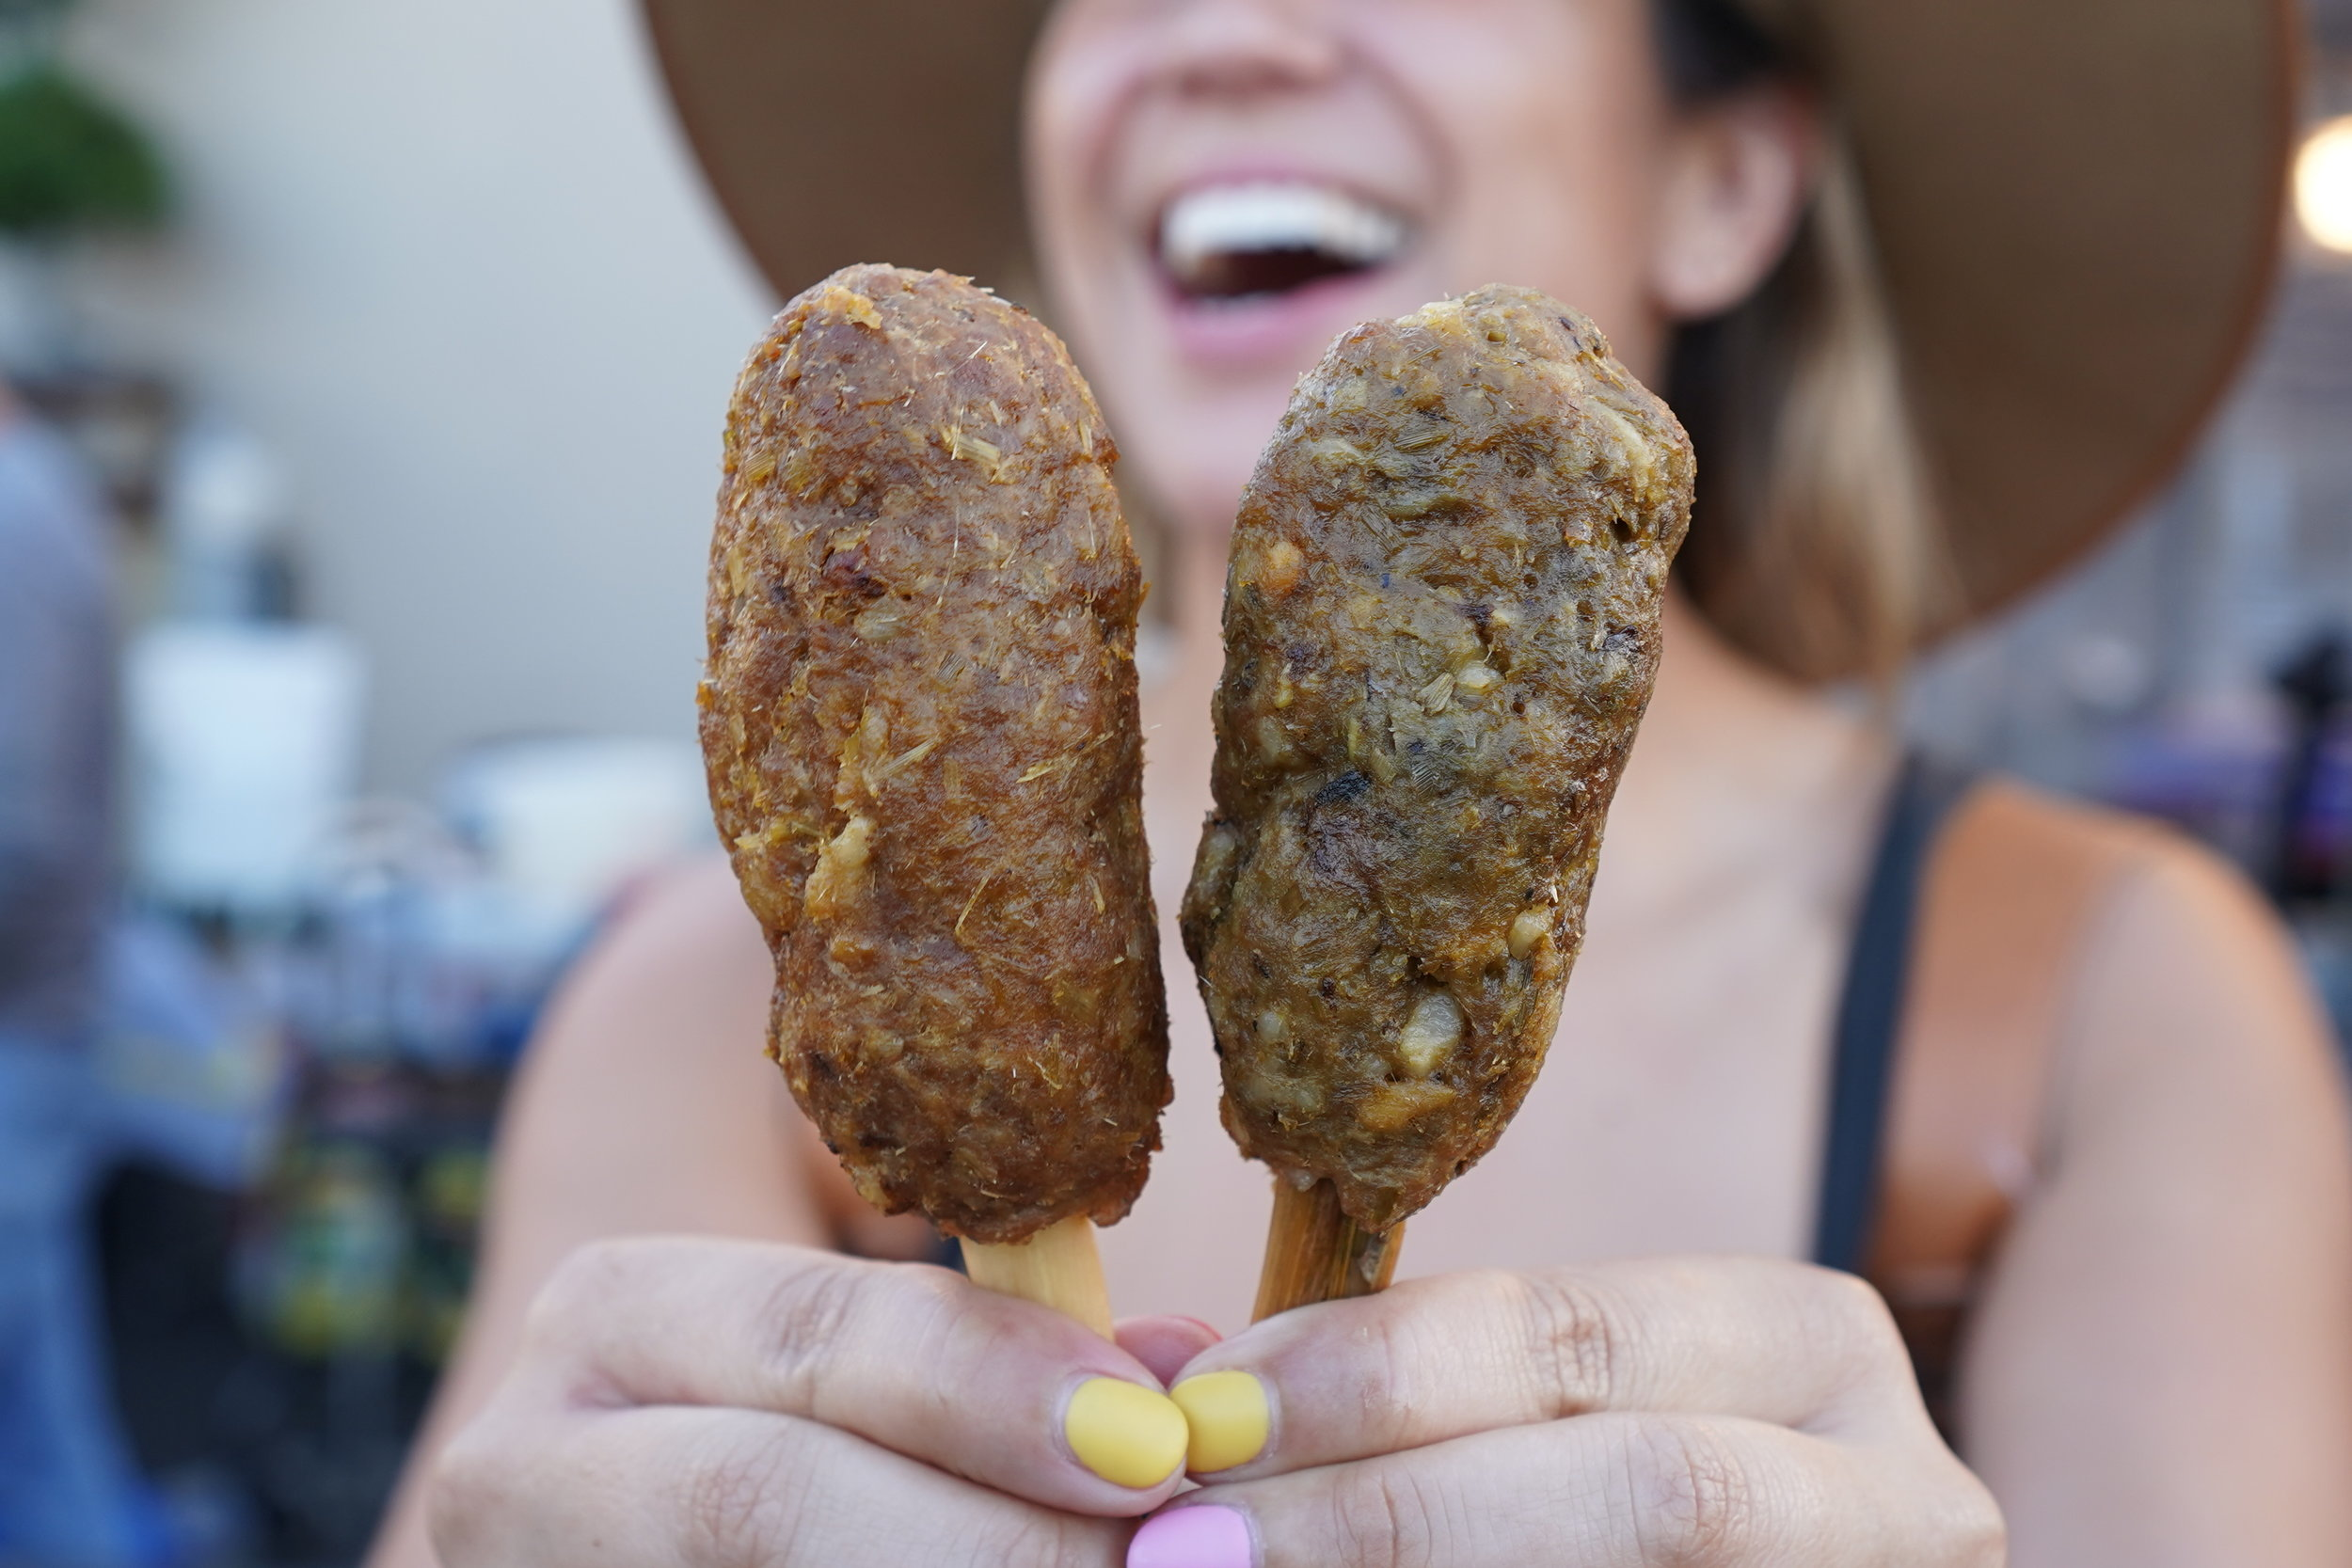 Lemongrass Grilled Sausage… bet ya can't have just one! | photo courtesy of 100inc Agency